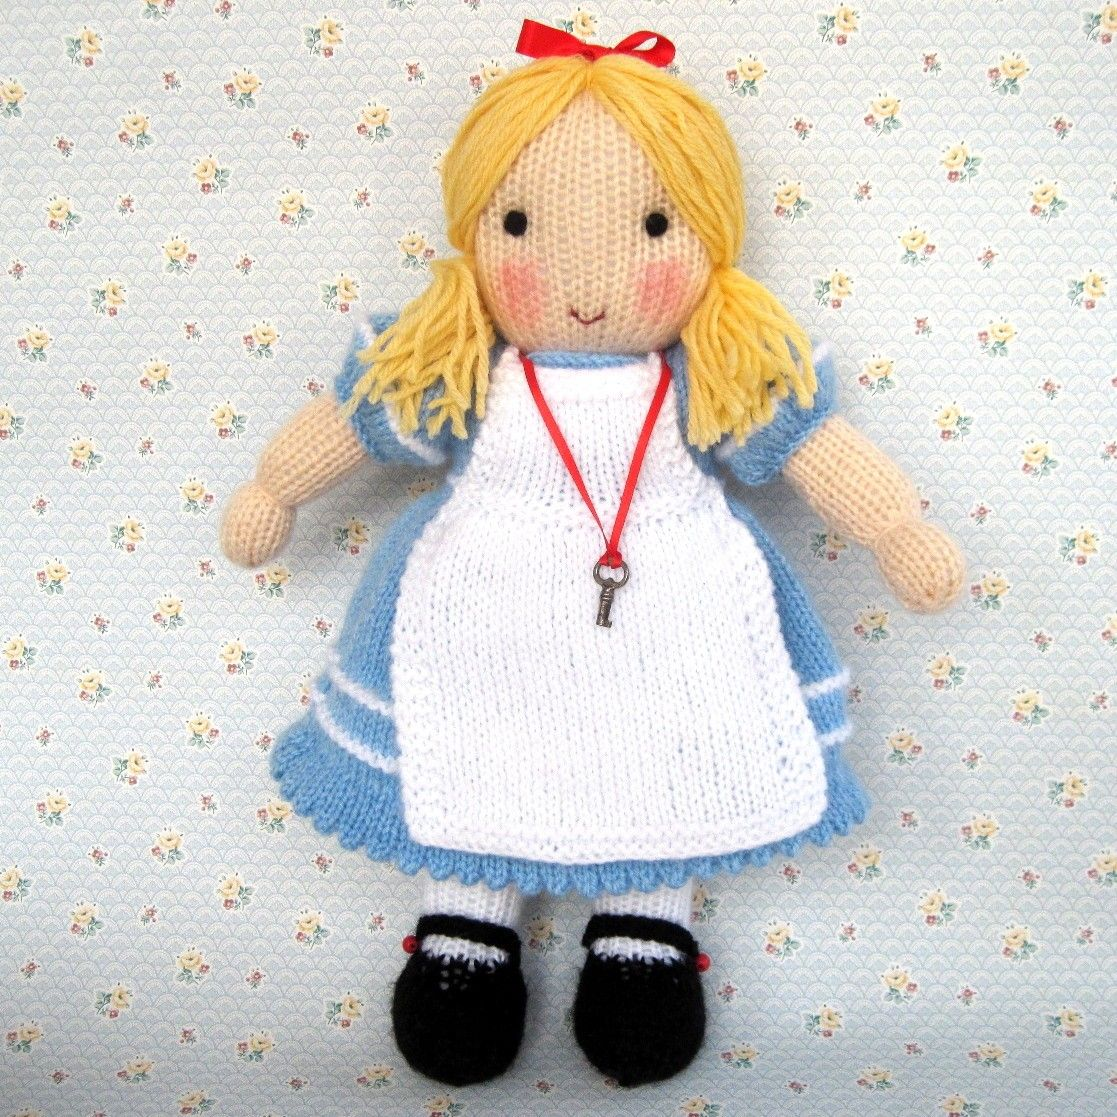 Alice in wonderland doll knitting pattern instant download alice in wonderland doll knitting pattern instant download bankloansurffo Image collections